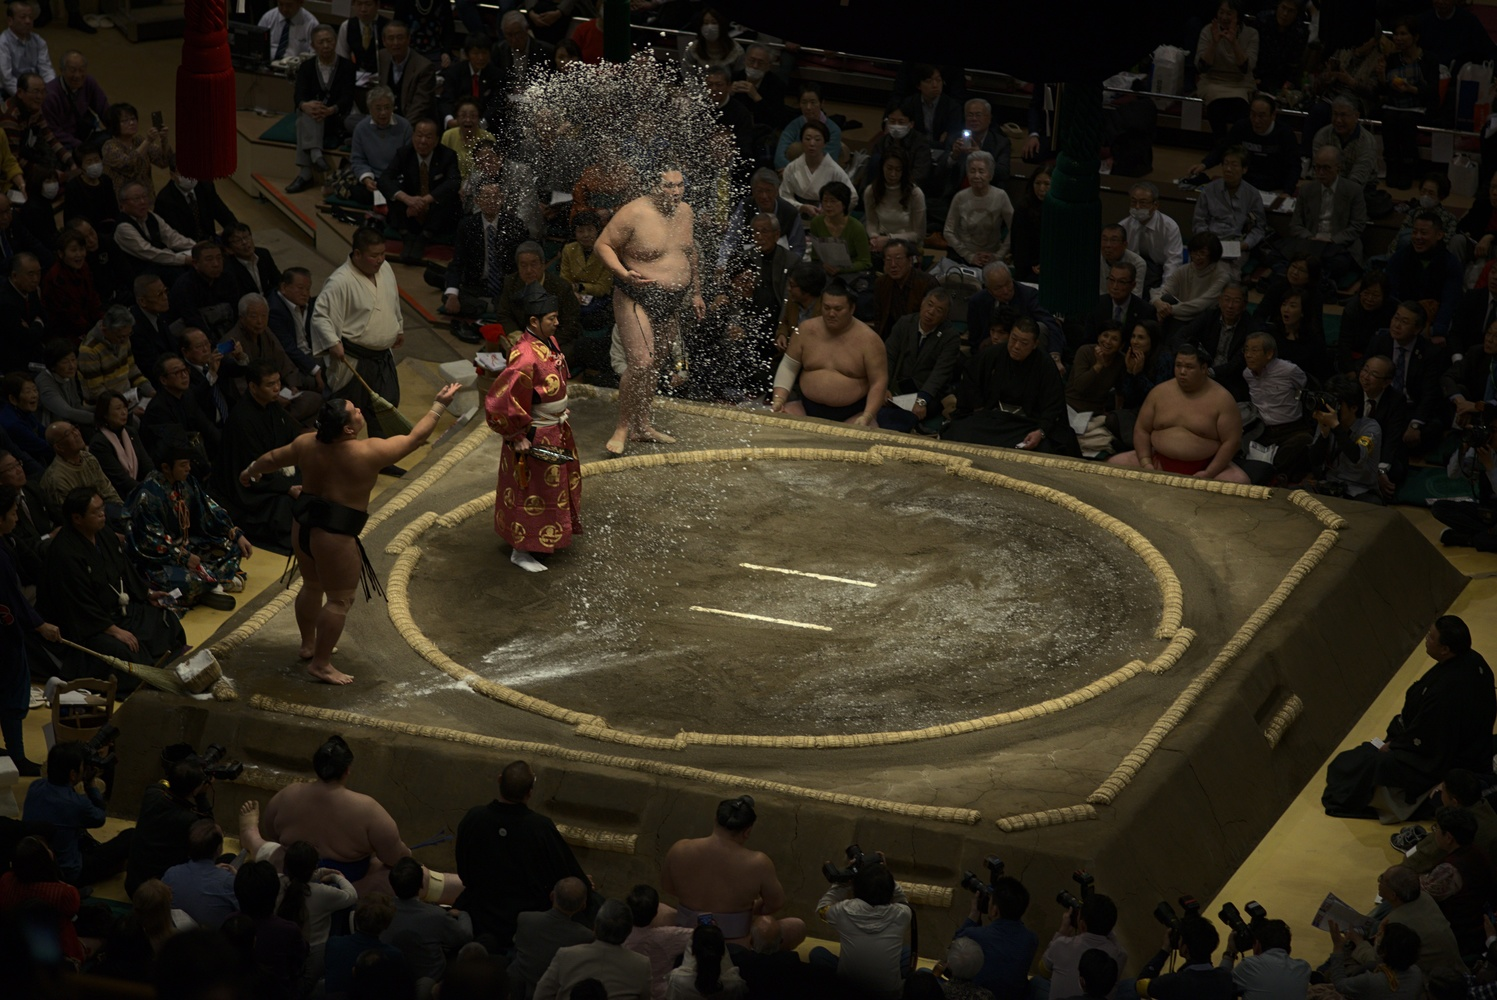 Yesterday I was at a sumo wrestling tournament in Tokyo for the first time by Jeena Paradies